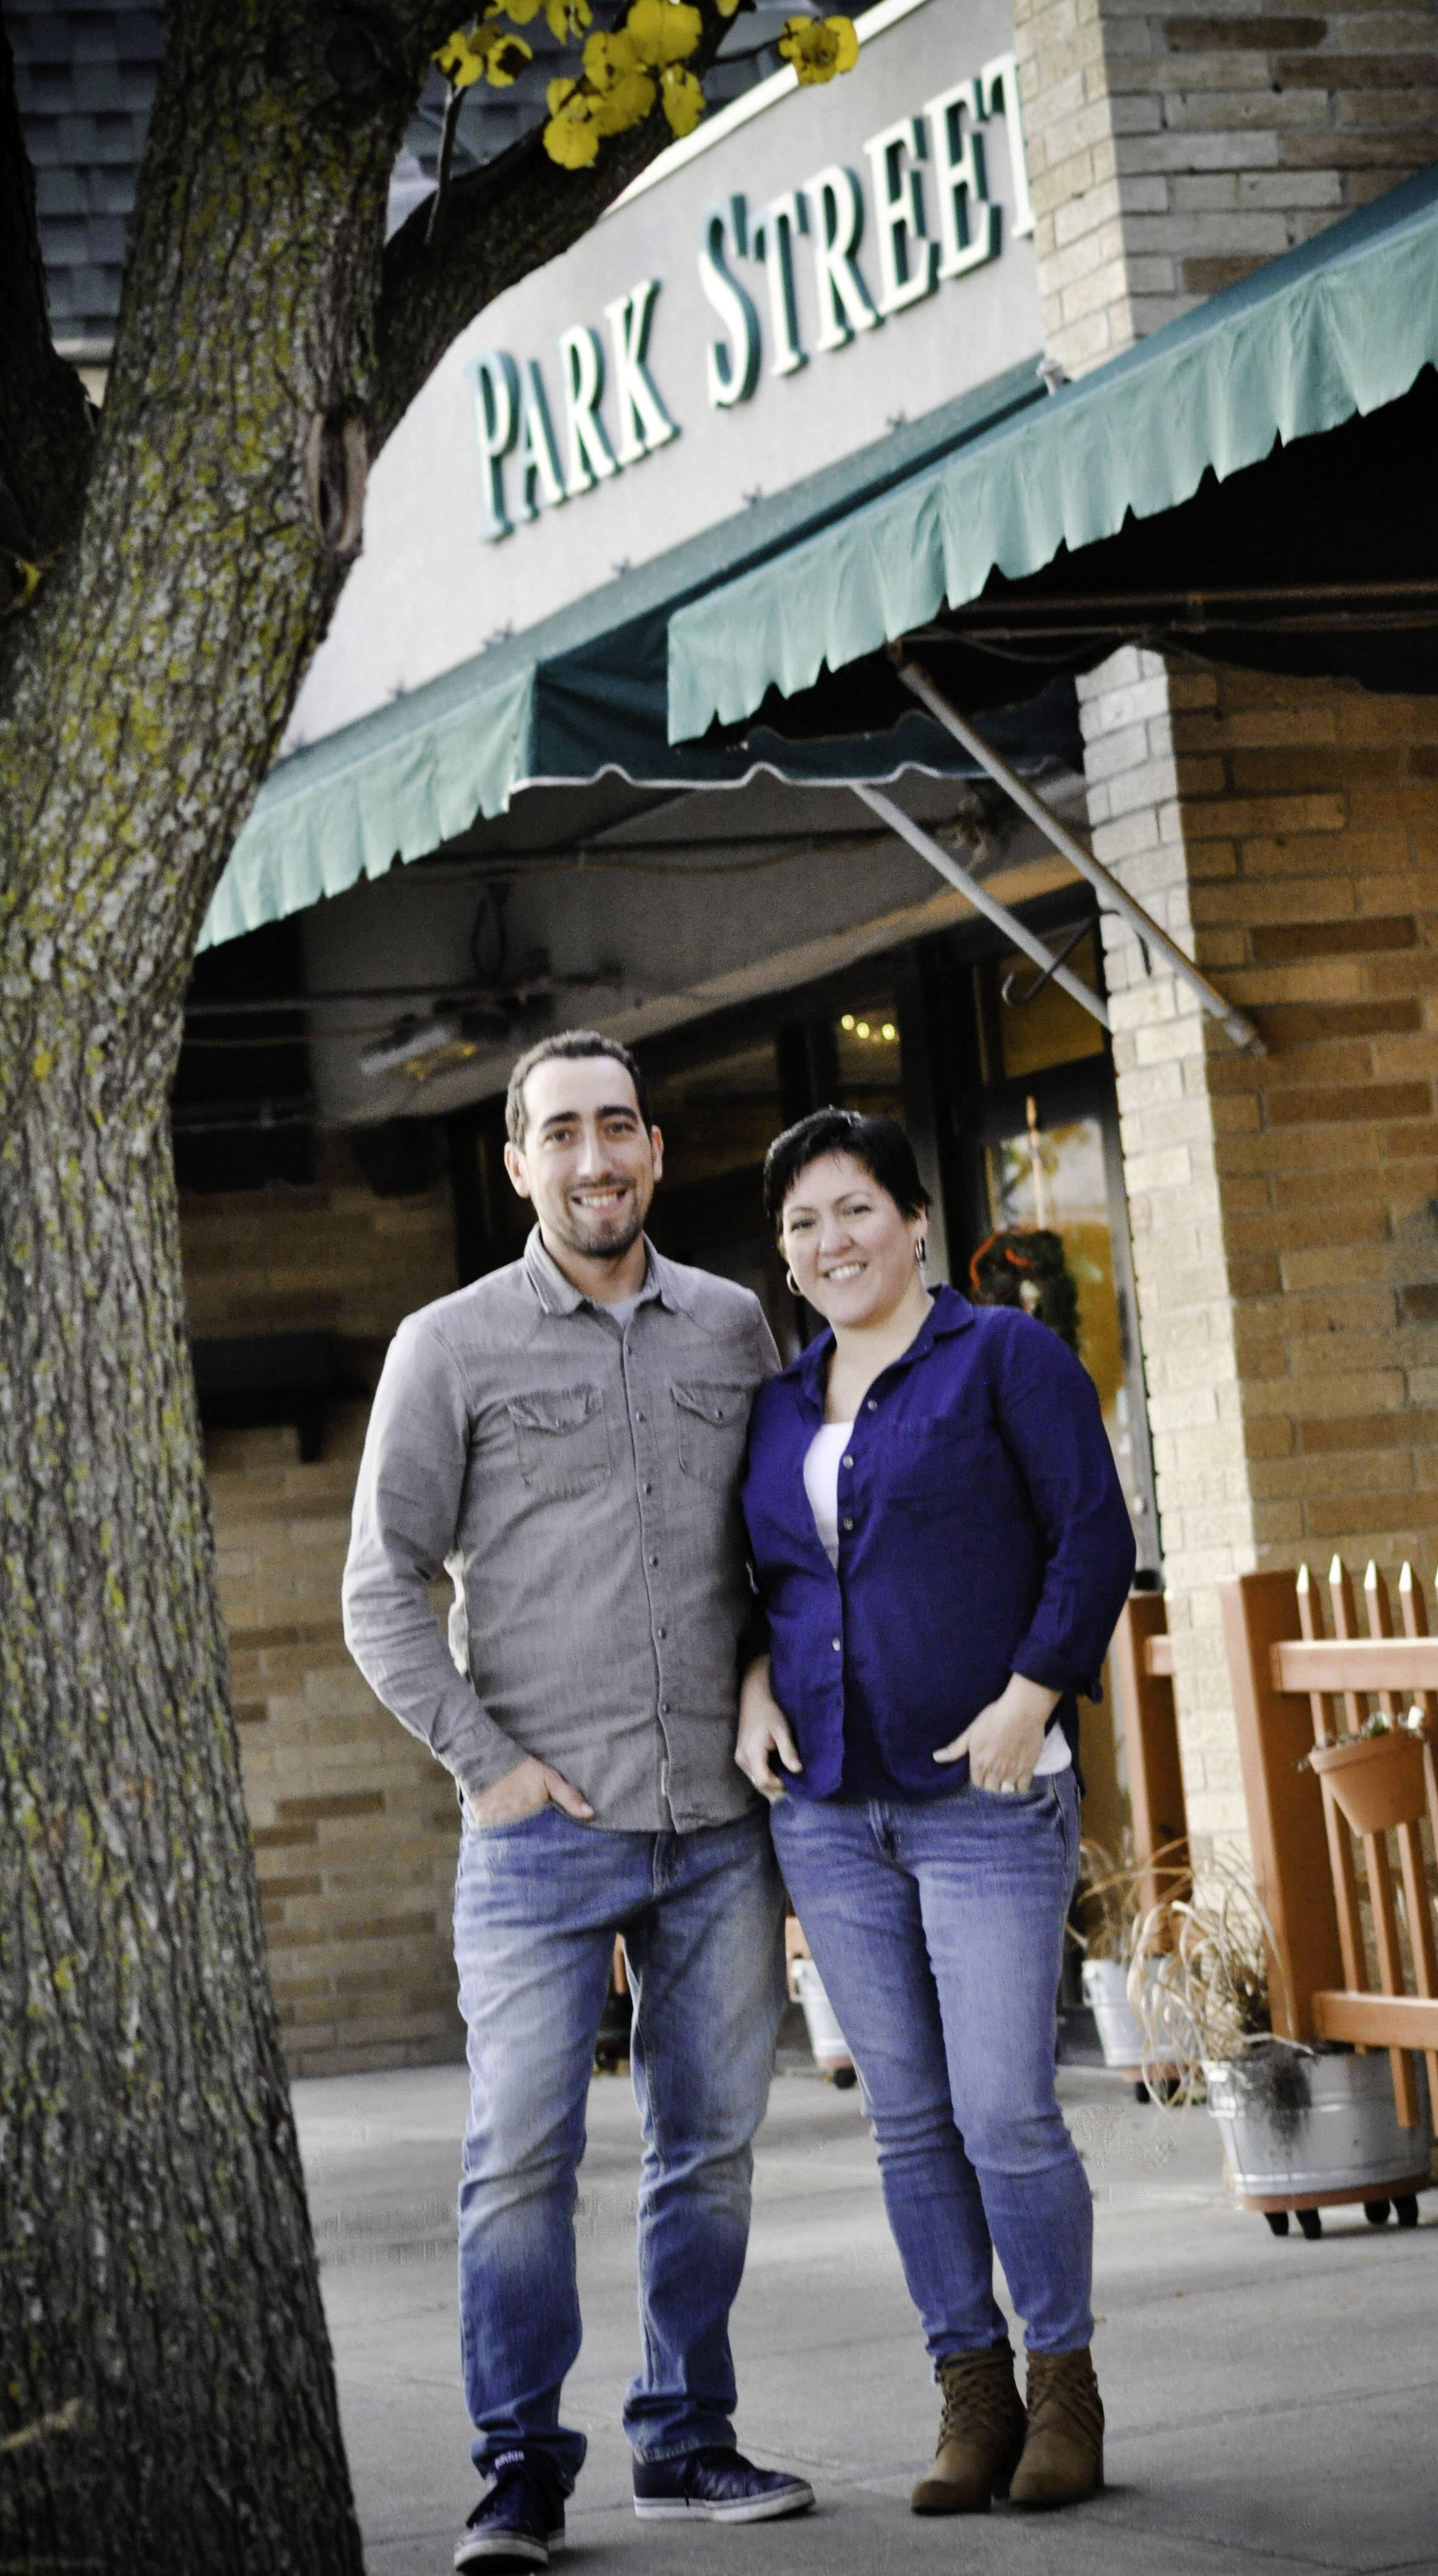 The Park Street Restaurant, an upscale eatery in downtown Mundelein, has changed hands. The new owners are Paul Arroyo and Nora Bellido Arroyo, a Grayslake couple.